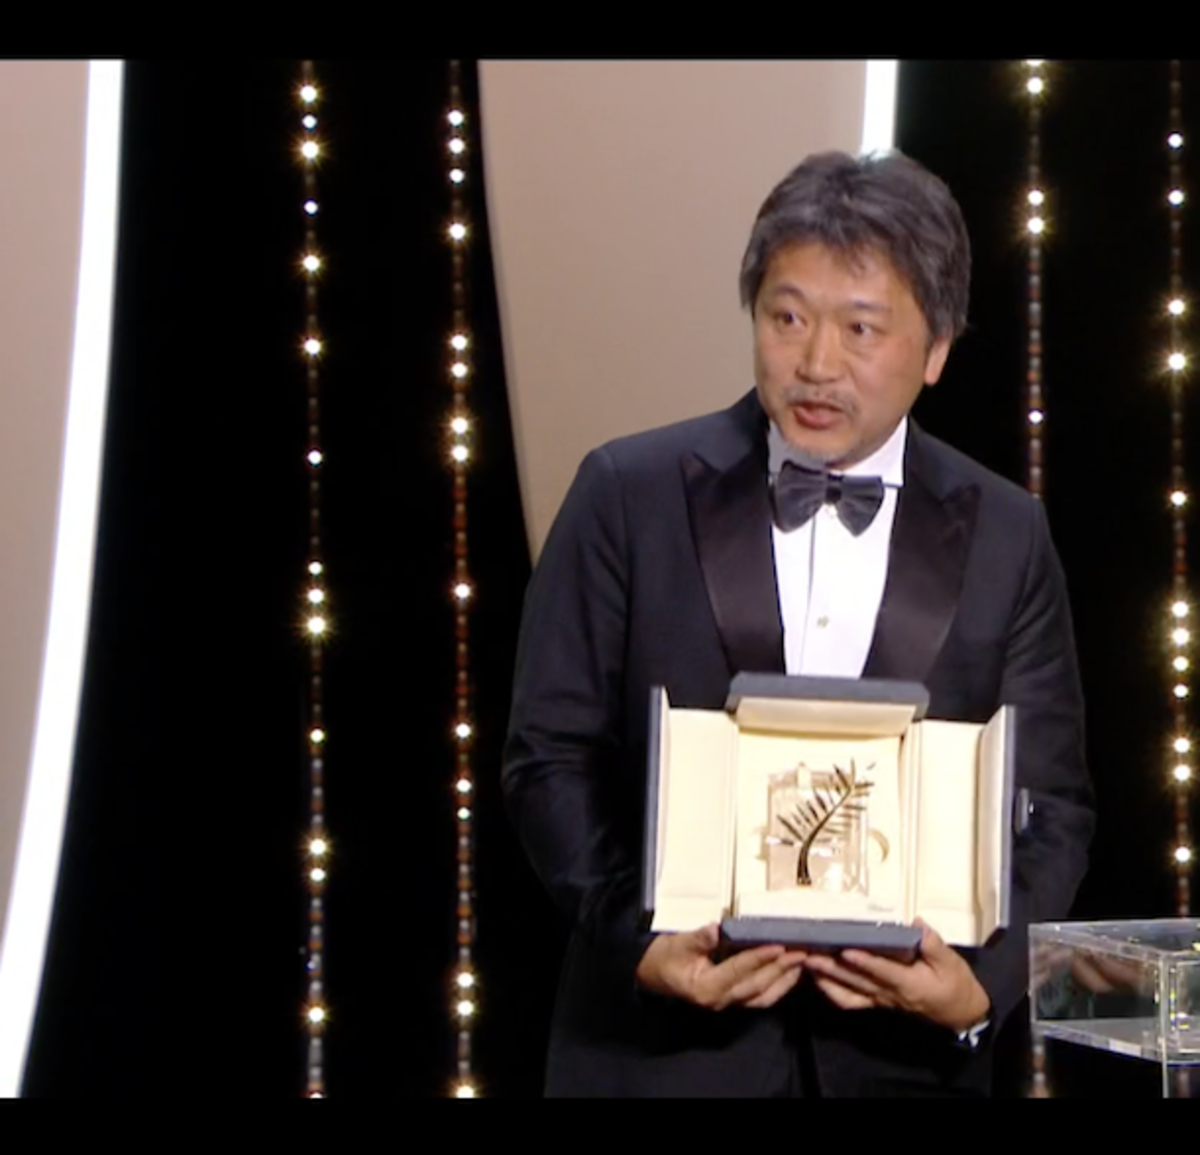 Director Hirokazu Kore-eda, seen here with his Palme D'Or award for the film, creates a heartwarming portrait of an unconventional family struggling to survive as well as stay together.